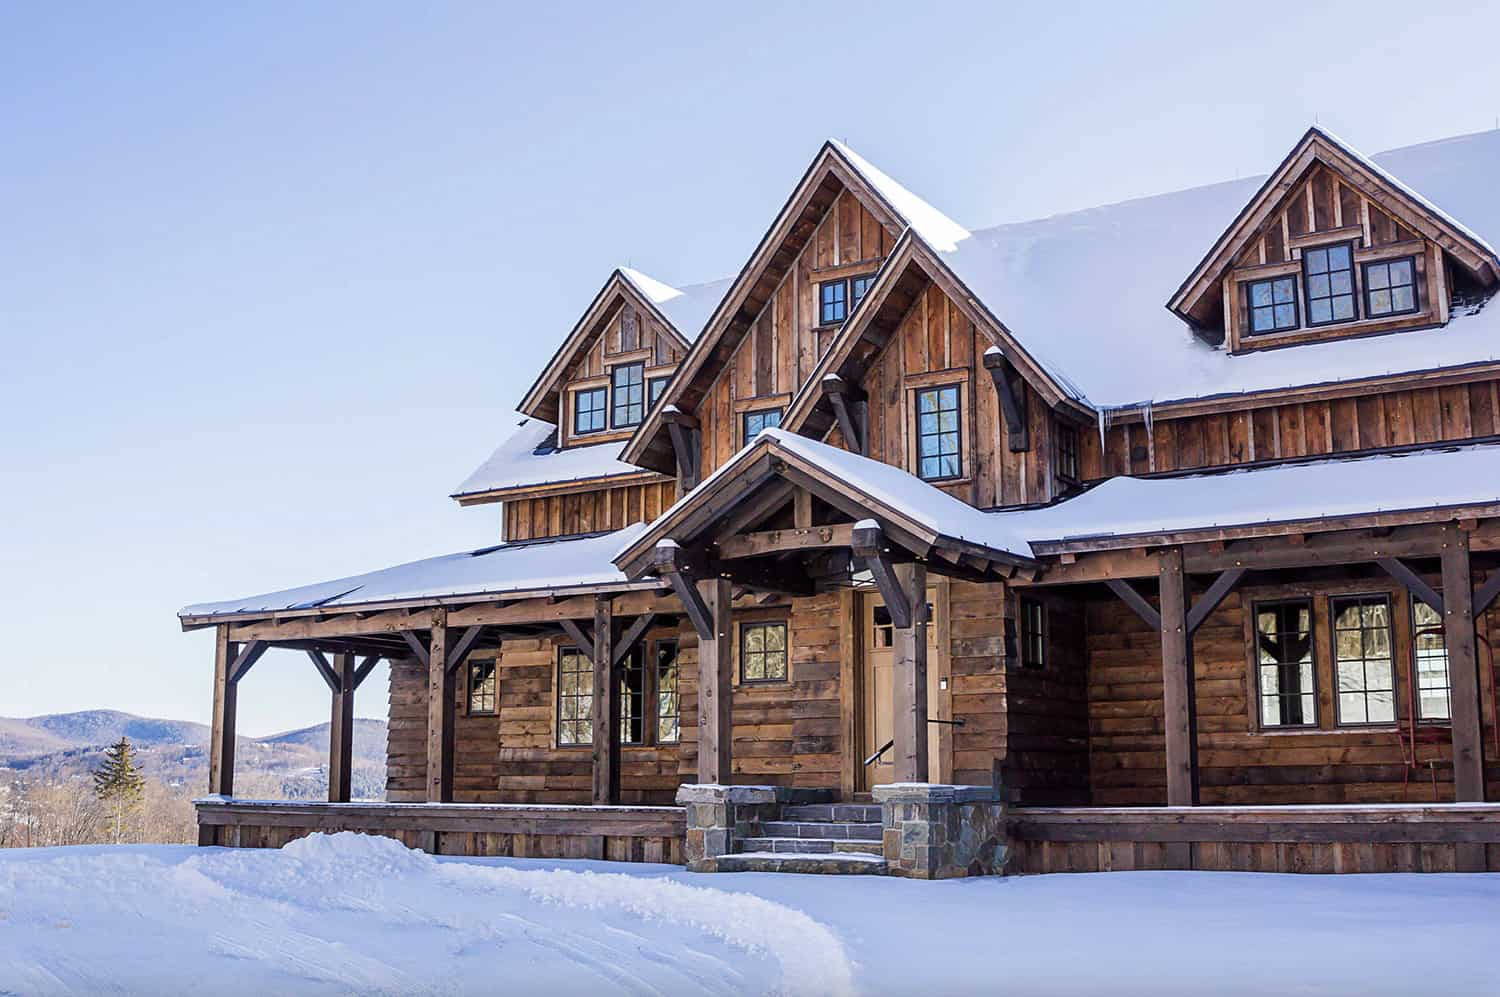 rustic-mountain-house-exterior-with-snow